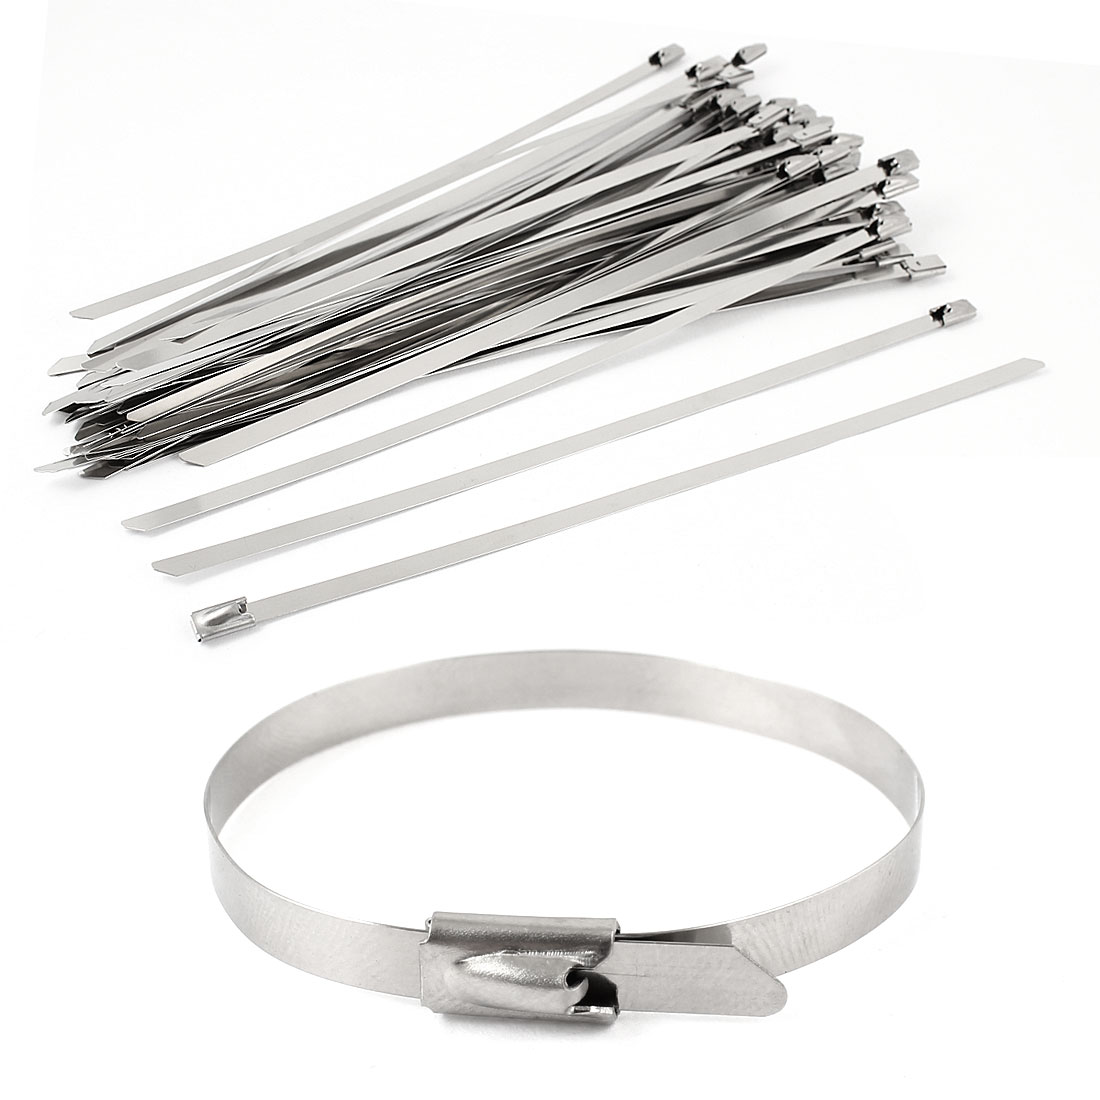 "50pcs 7.9"" Long 4.6mm Width Stainless Steel Sprayed Cable Tie Band Clamp"